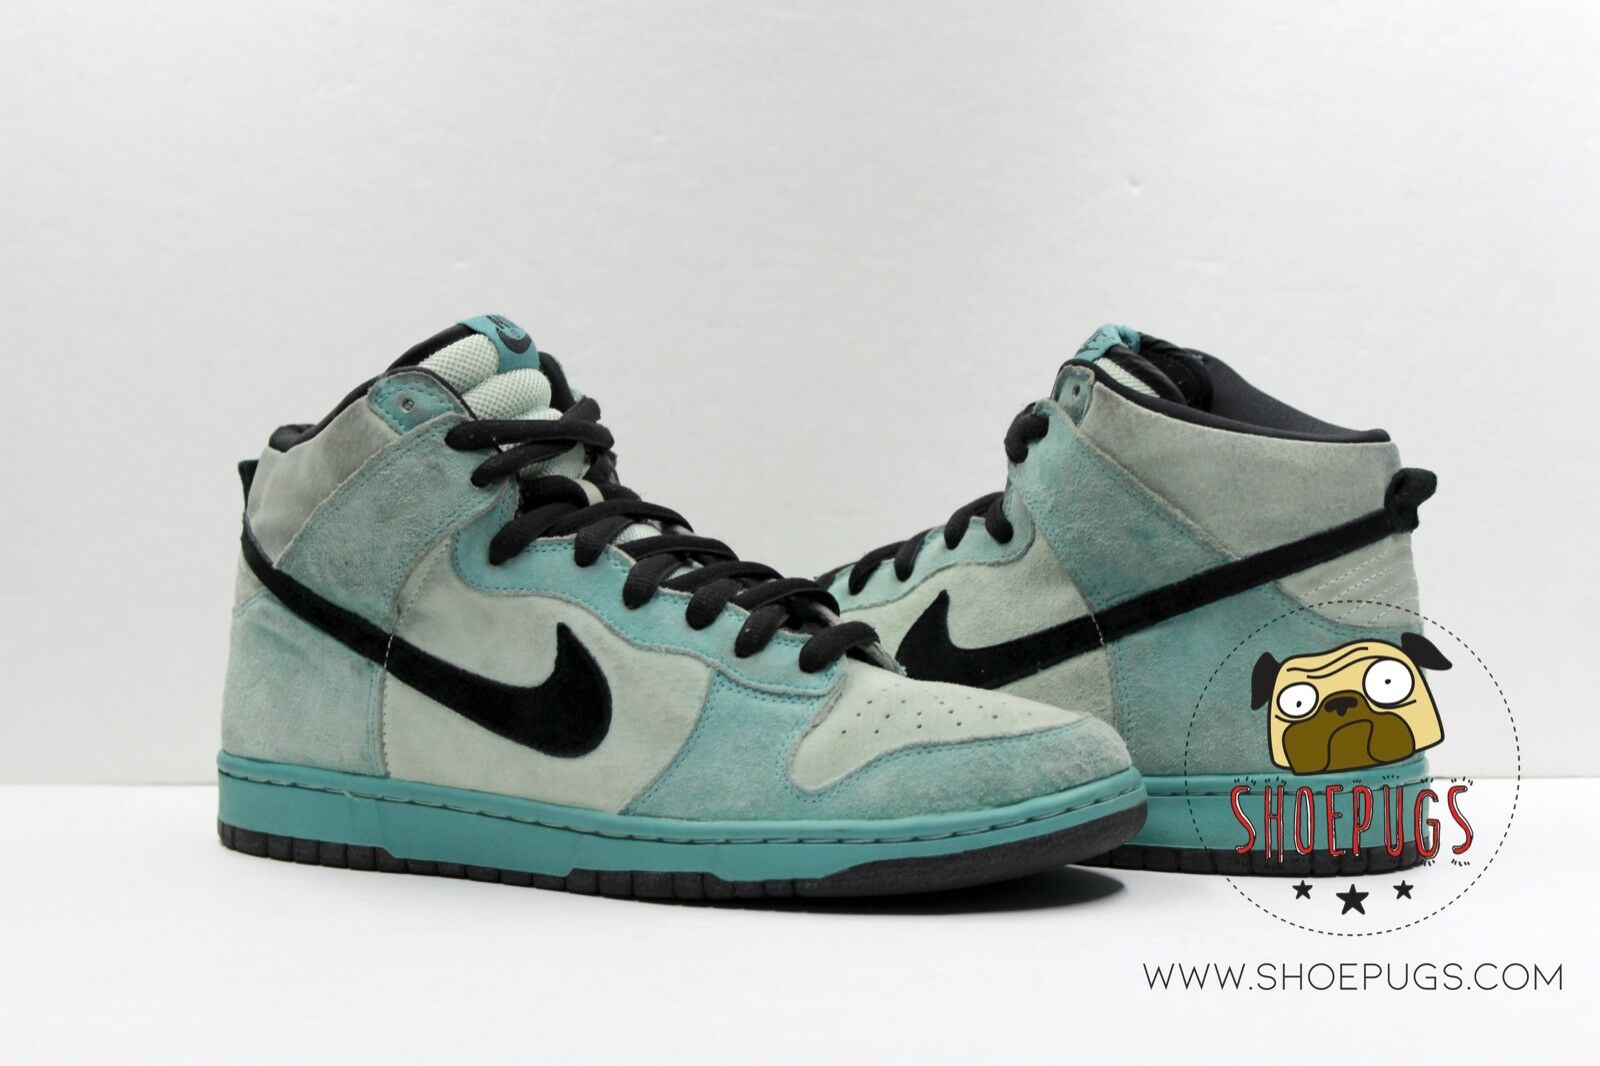 2004 Nike Dunk High Pro SB Sea Crystal sz 10.5 w  Box ice green   TRUSTED SELLER